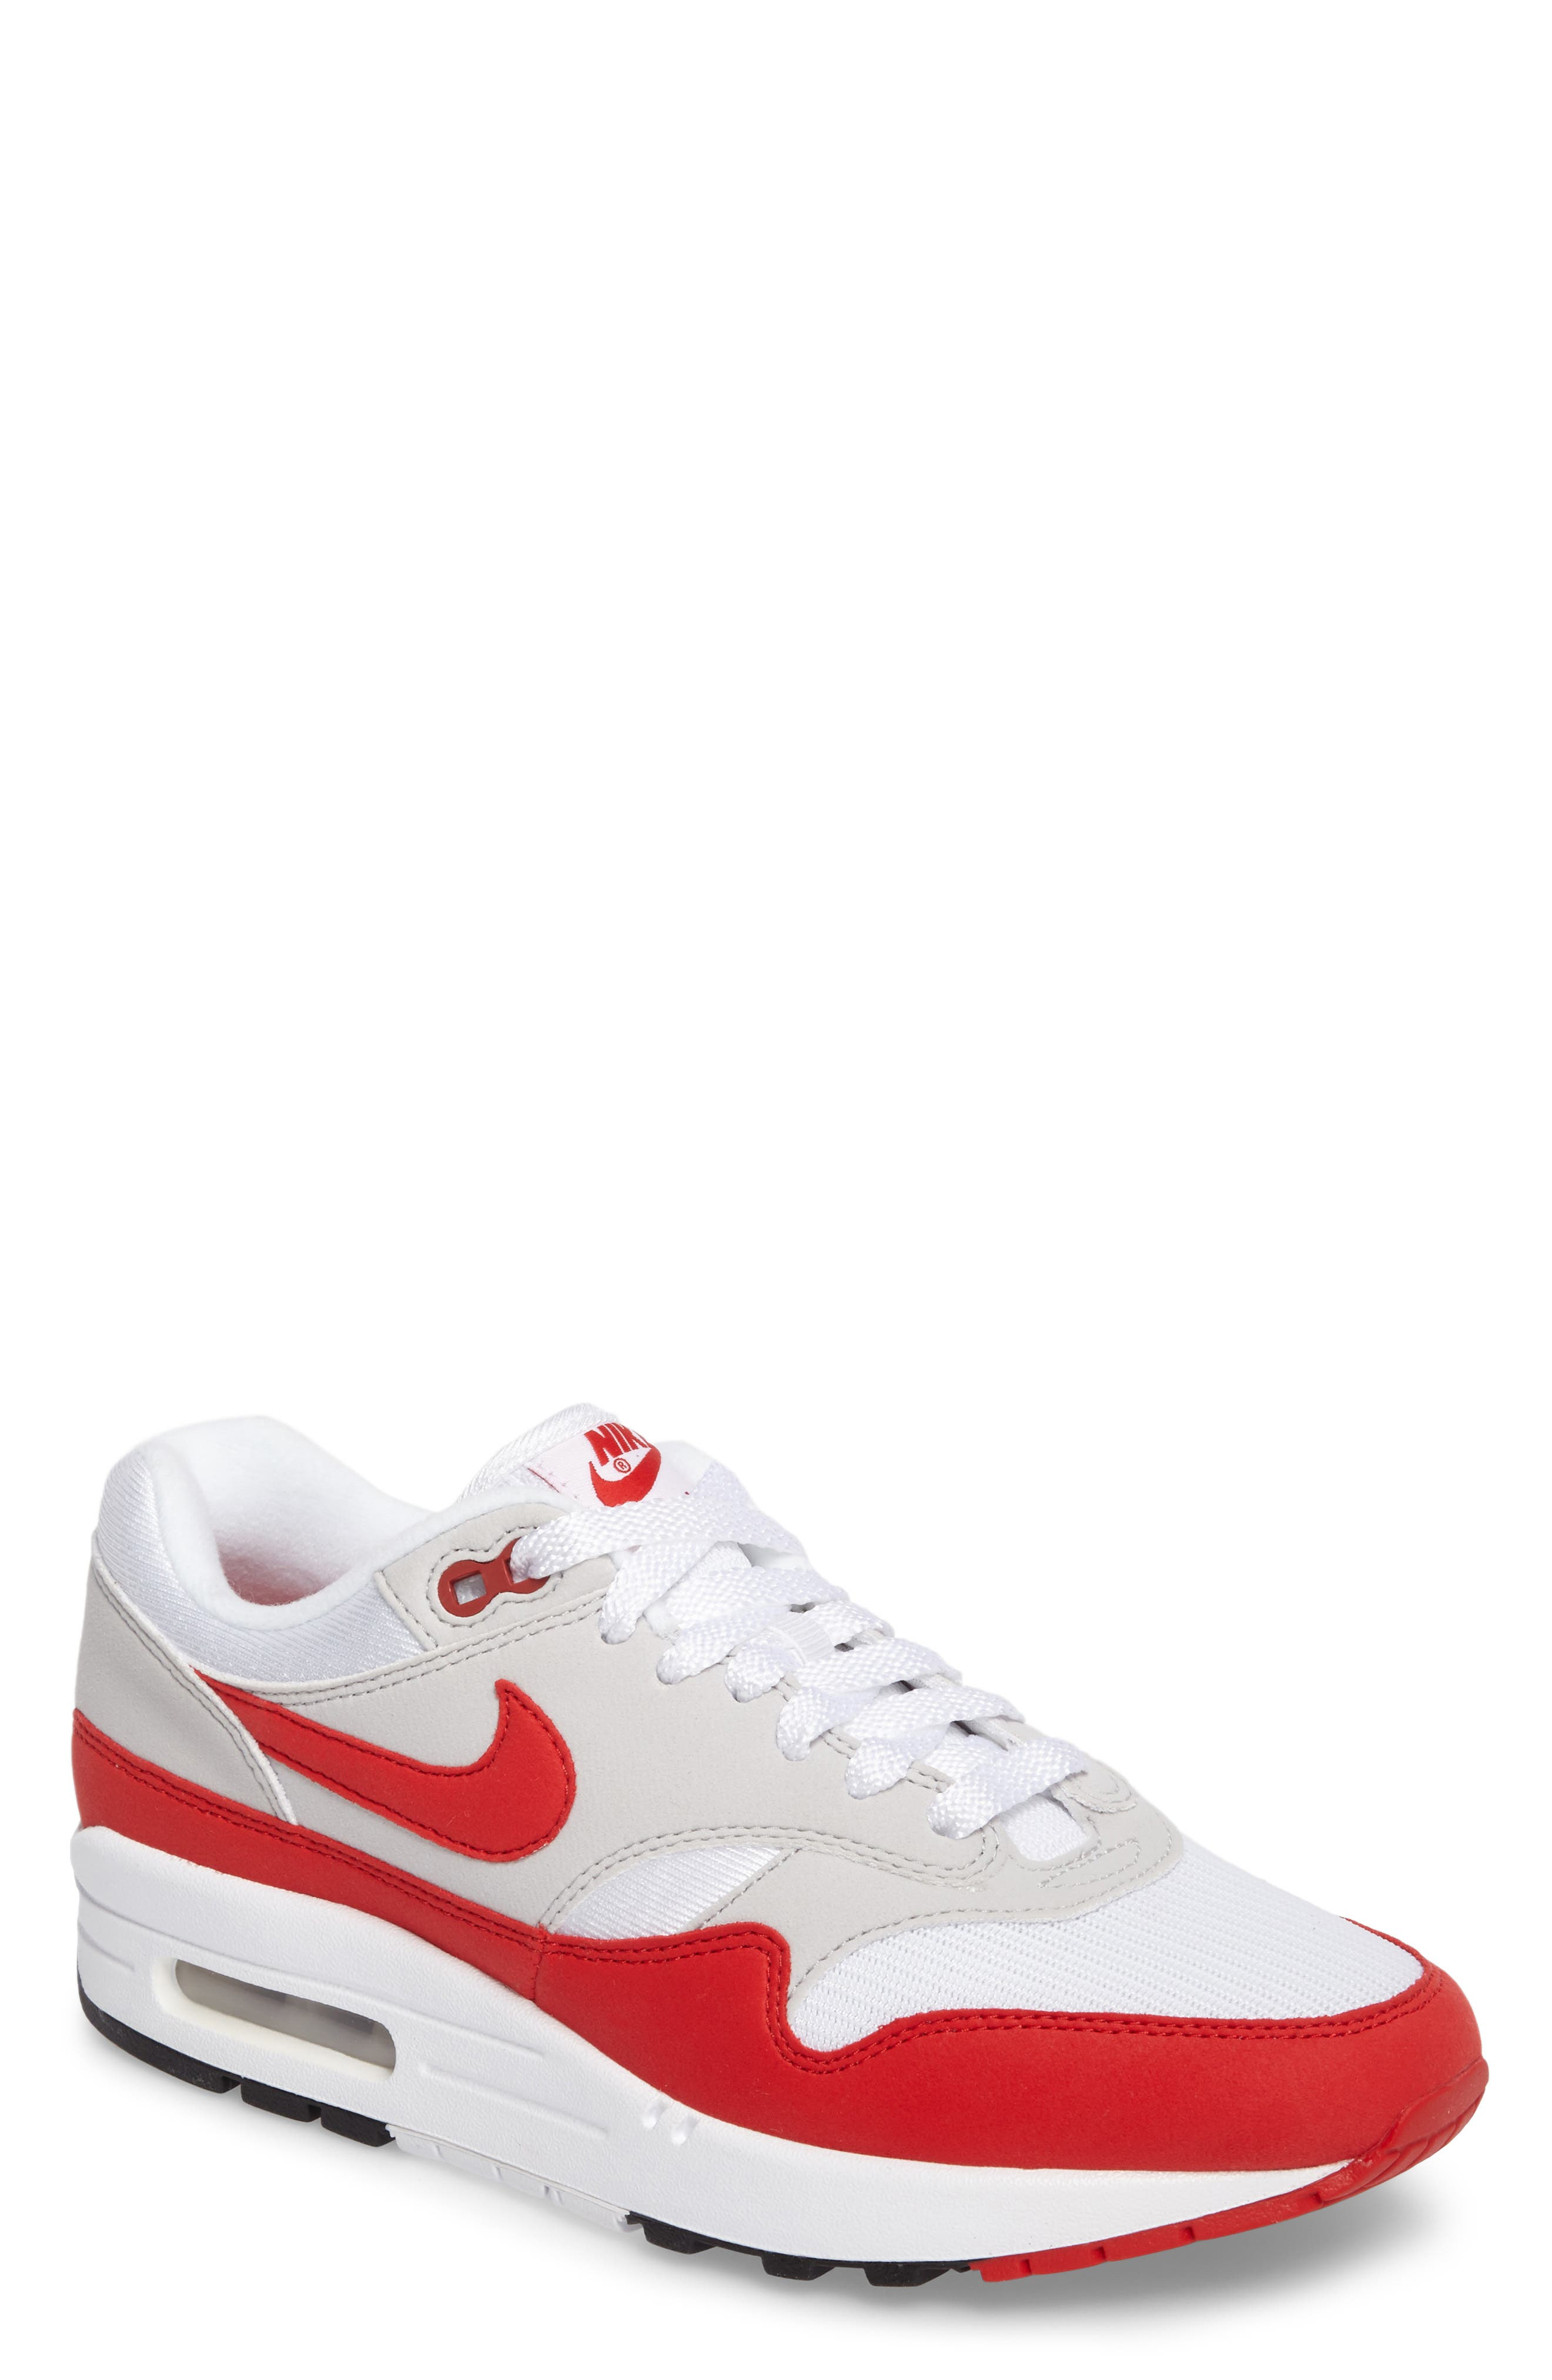 Air Max 1 Anniversary Sneaker,                         Main,                         color, WHITE/ RED/ GREY/ BLACK